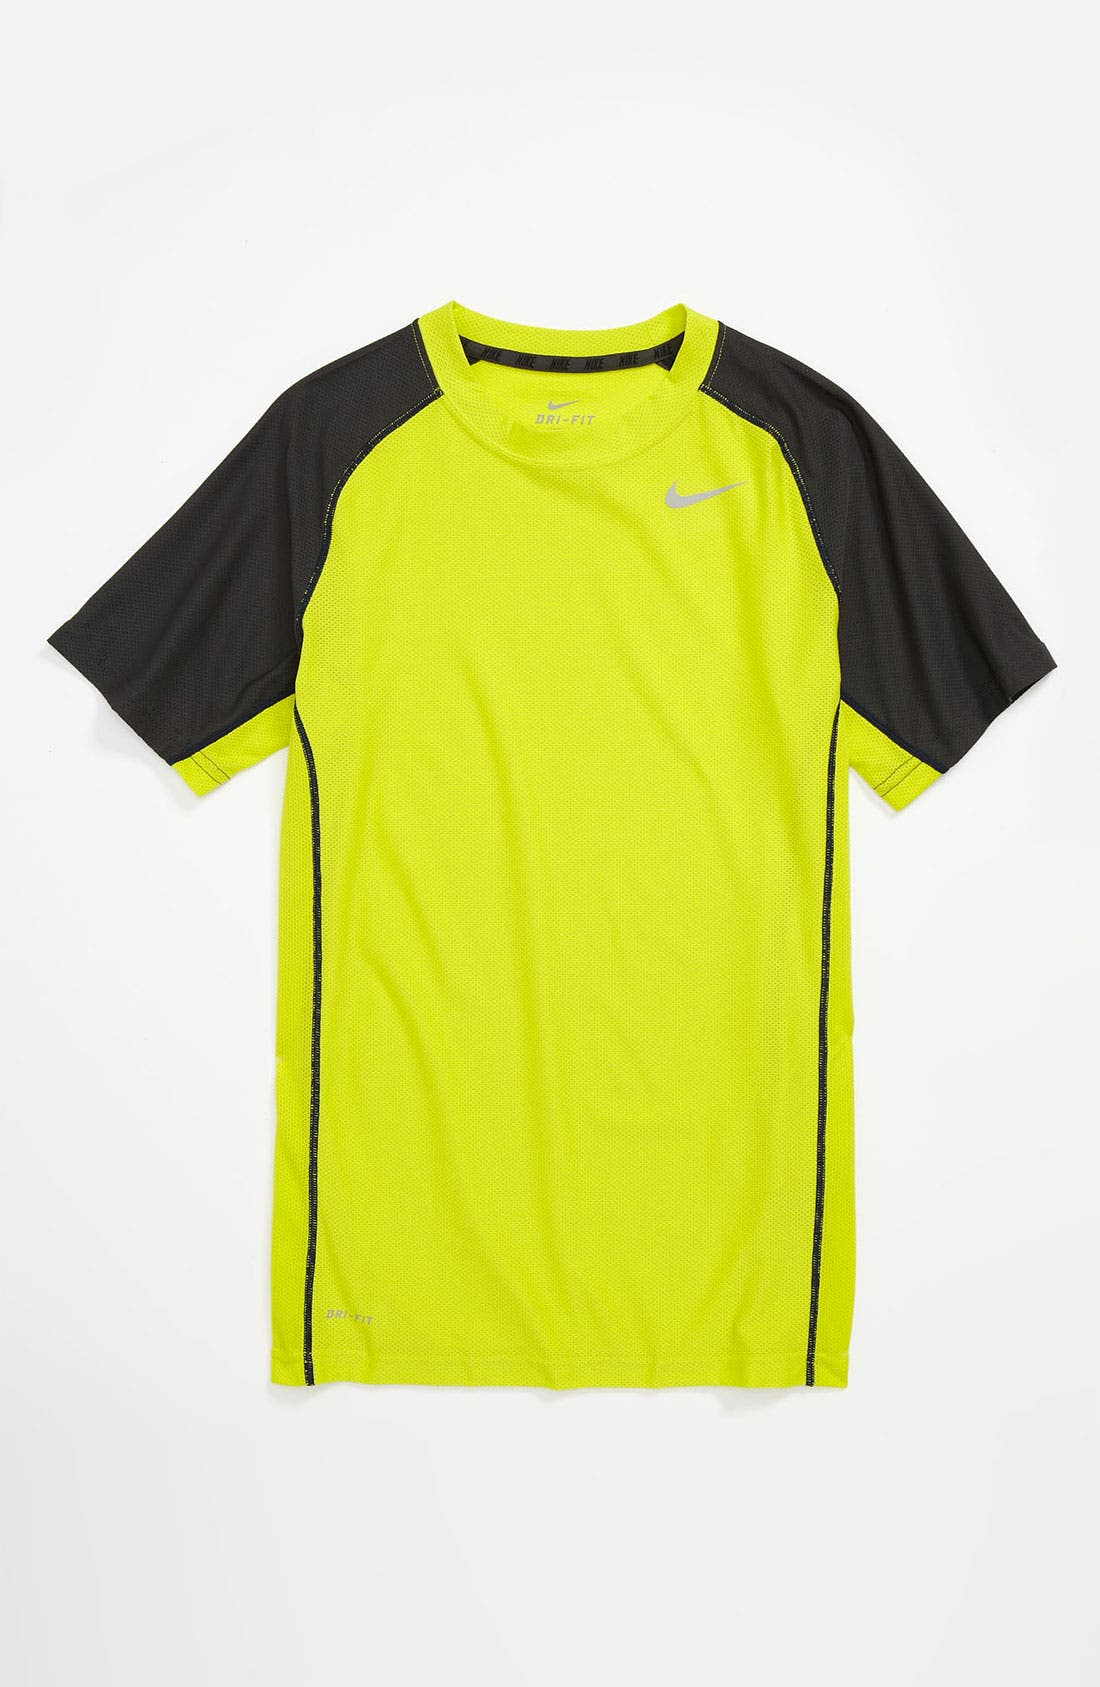 Alternate Image 1 Selected - Nike 'Speed Fly' T-Shirt (Big Boys)